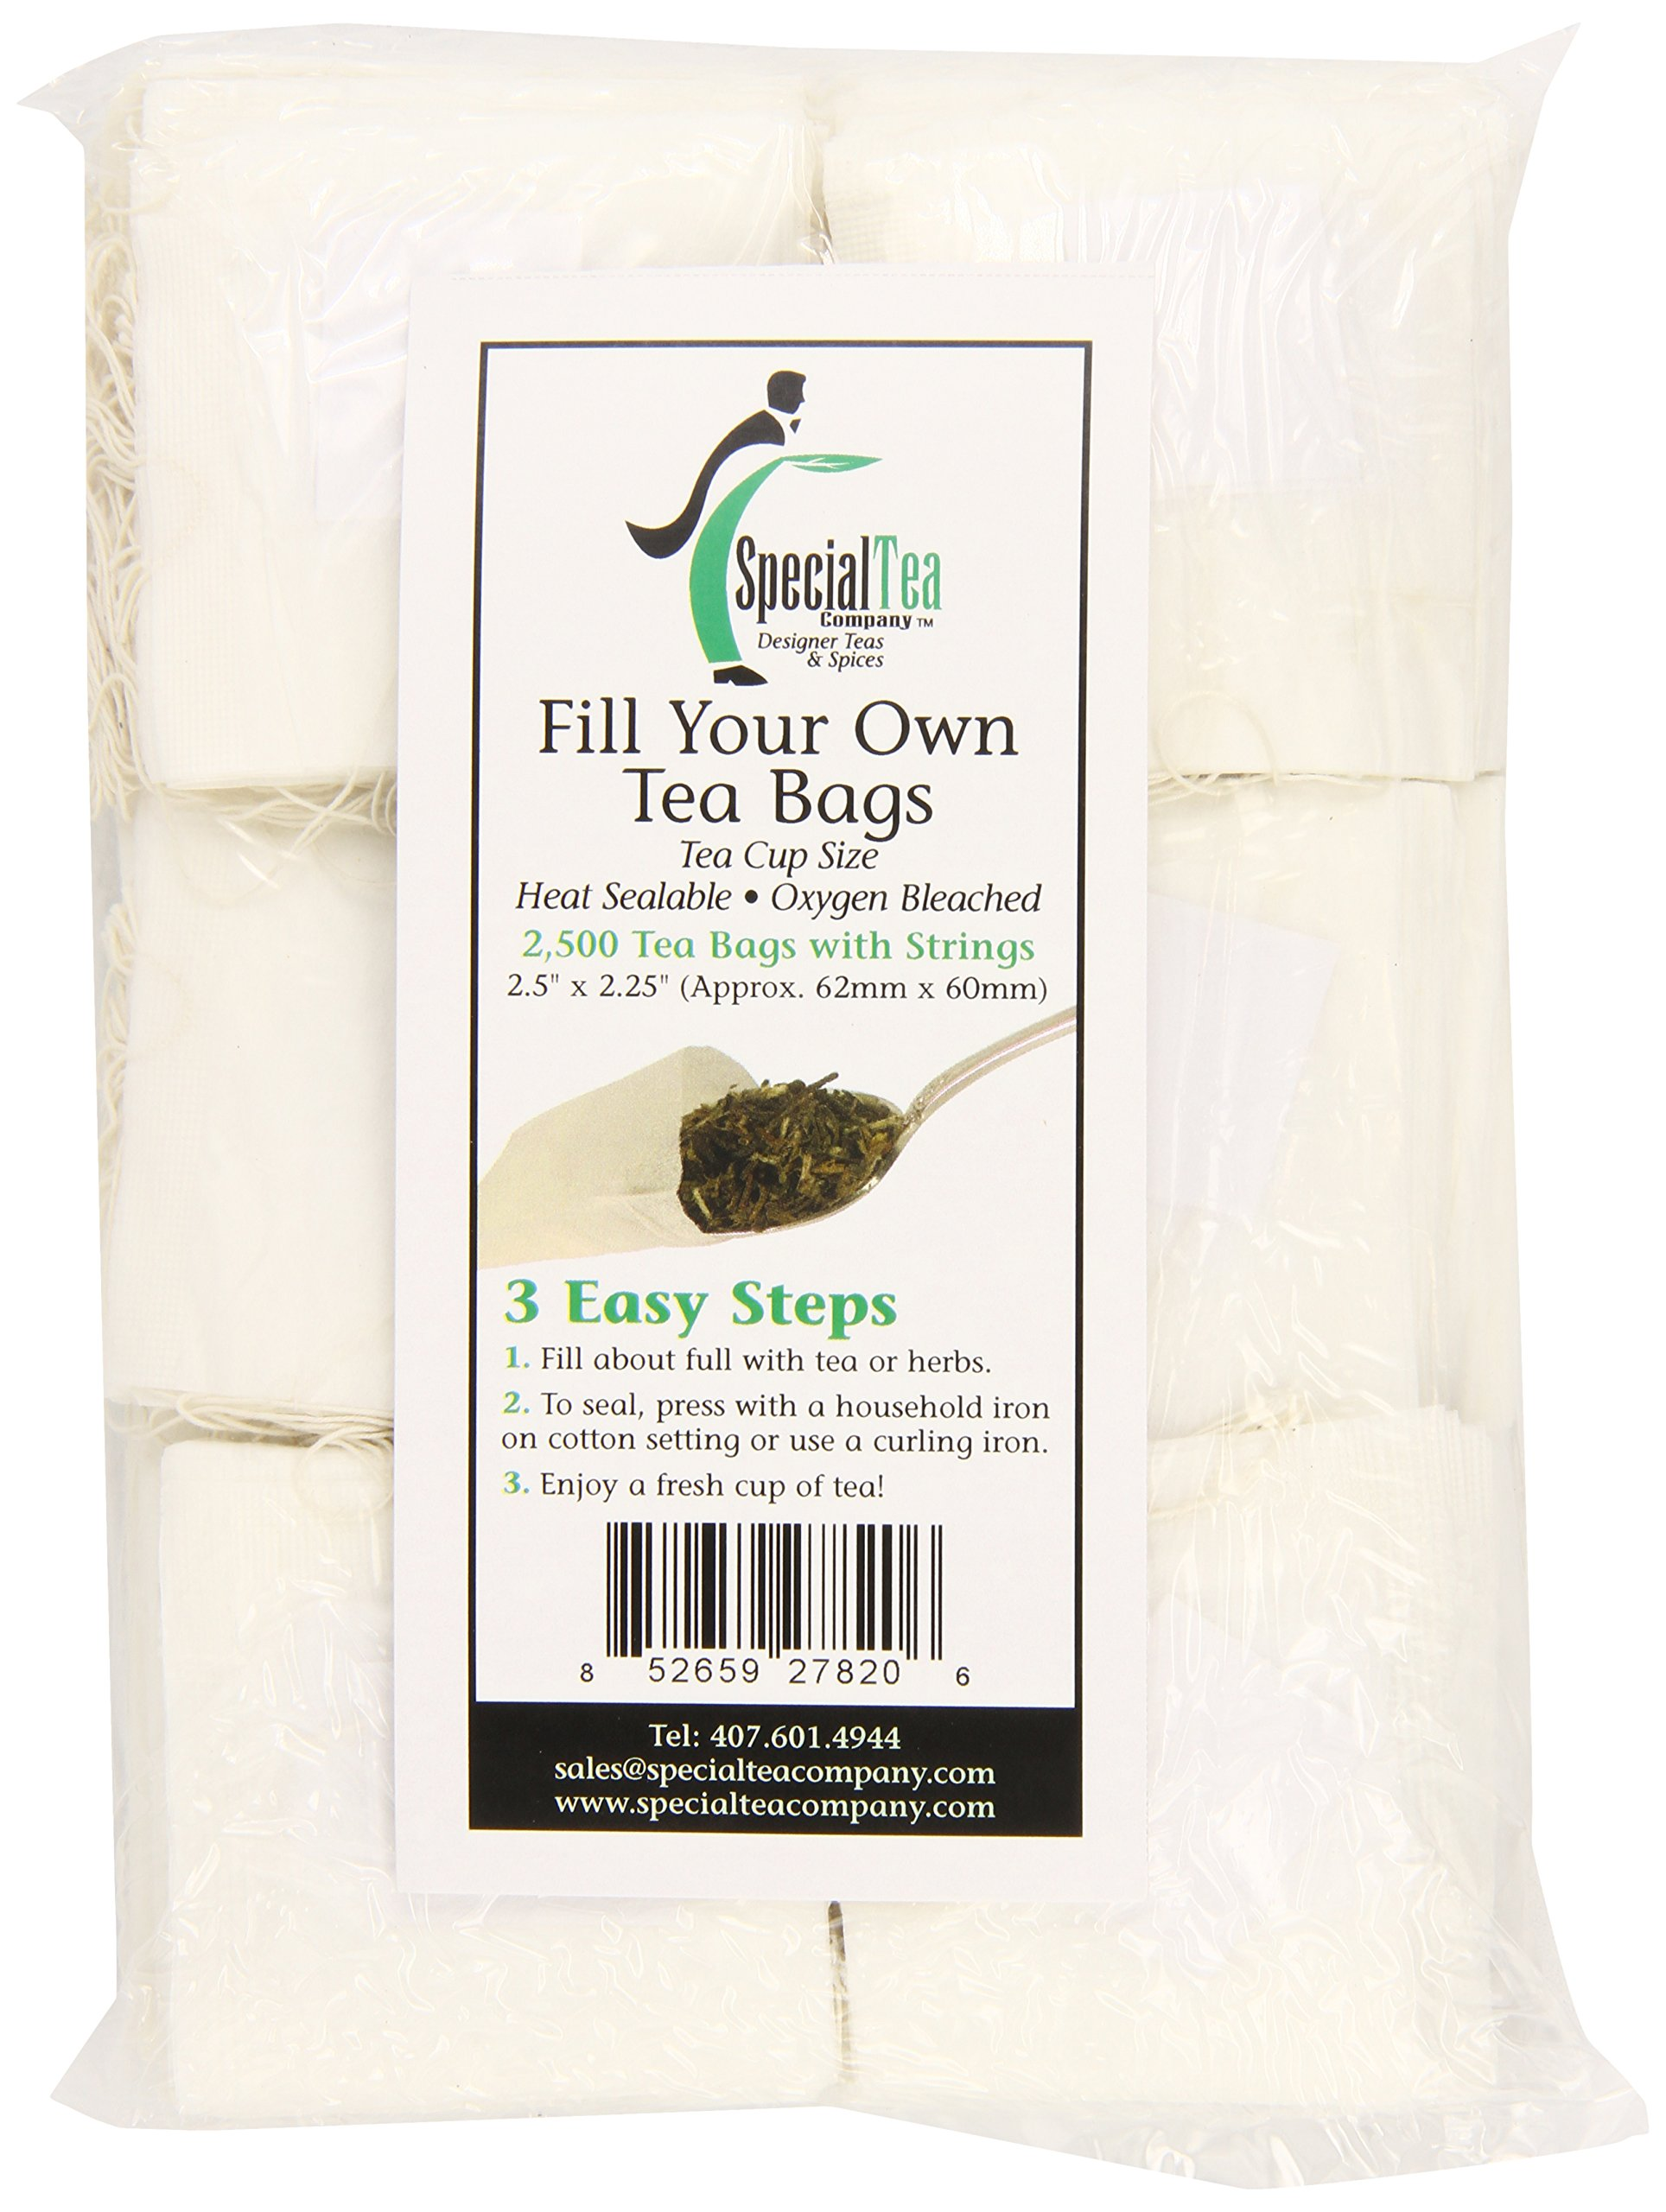 Special Tea Empty Tea Bags with String Bulk Case, 2 x 2.25 Inches, 2500 Count